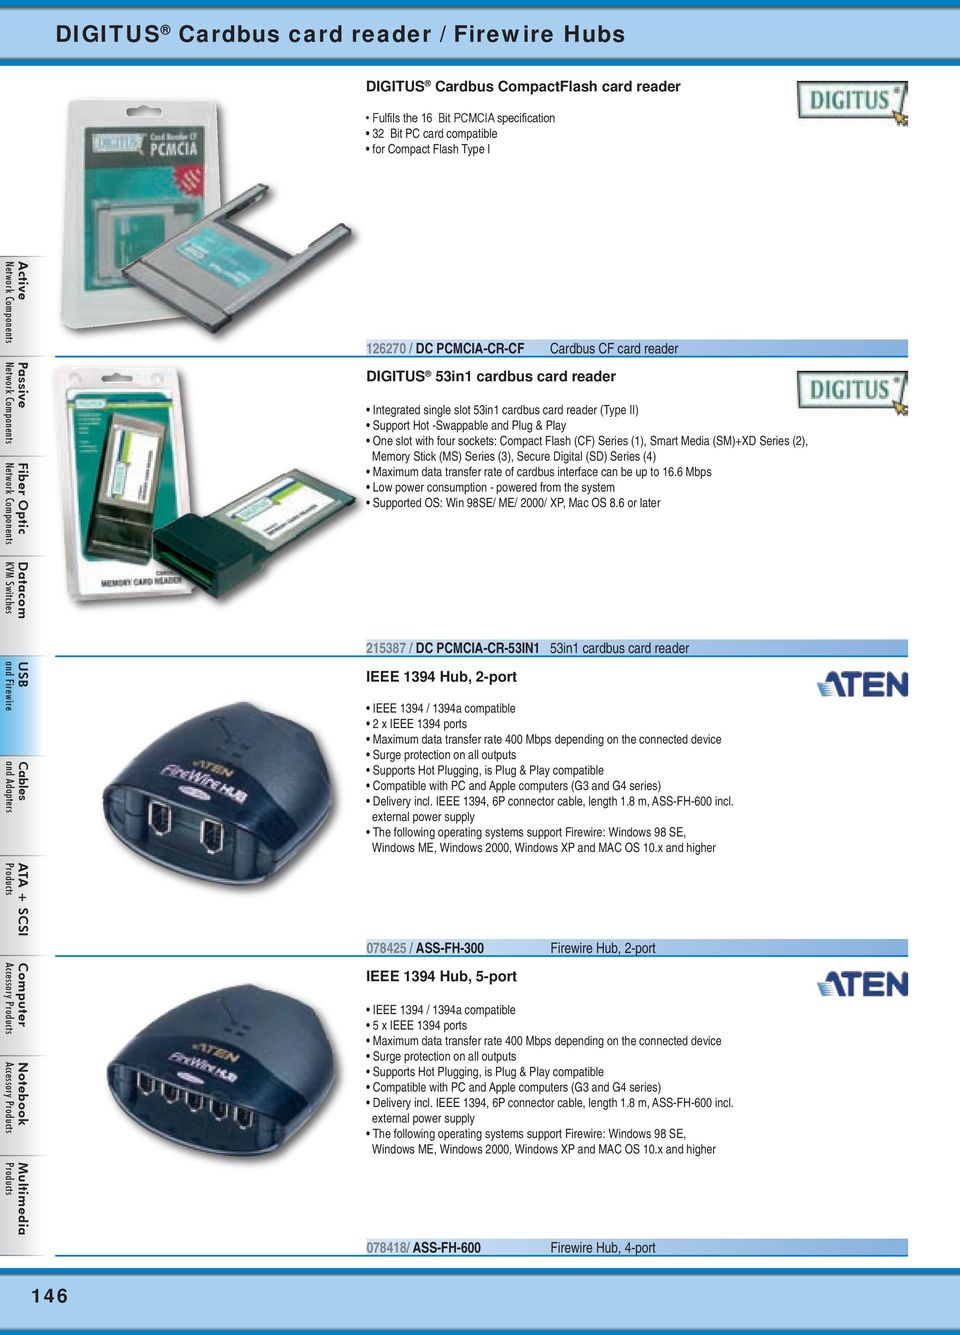 Compact Flash (CF) Series (1), Smart Media (SM)+XD Series (2), Memory Stick (MS) Series (3), Secure Digital (SD) Series (4) Maximum data transfer rate of cardbus interface can be up to 16.